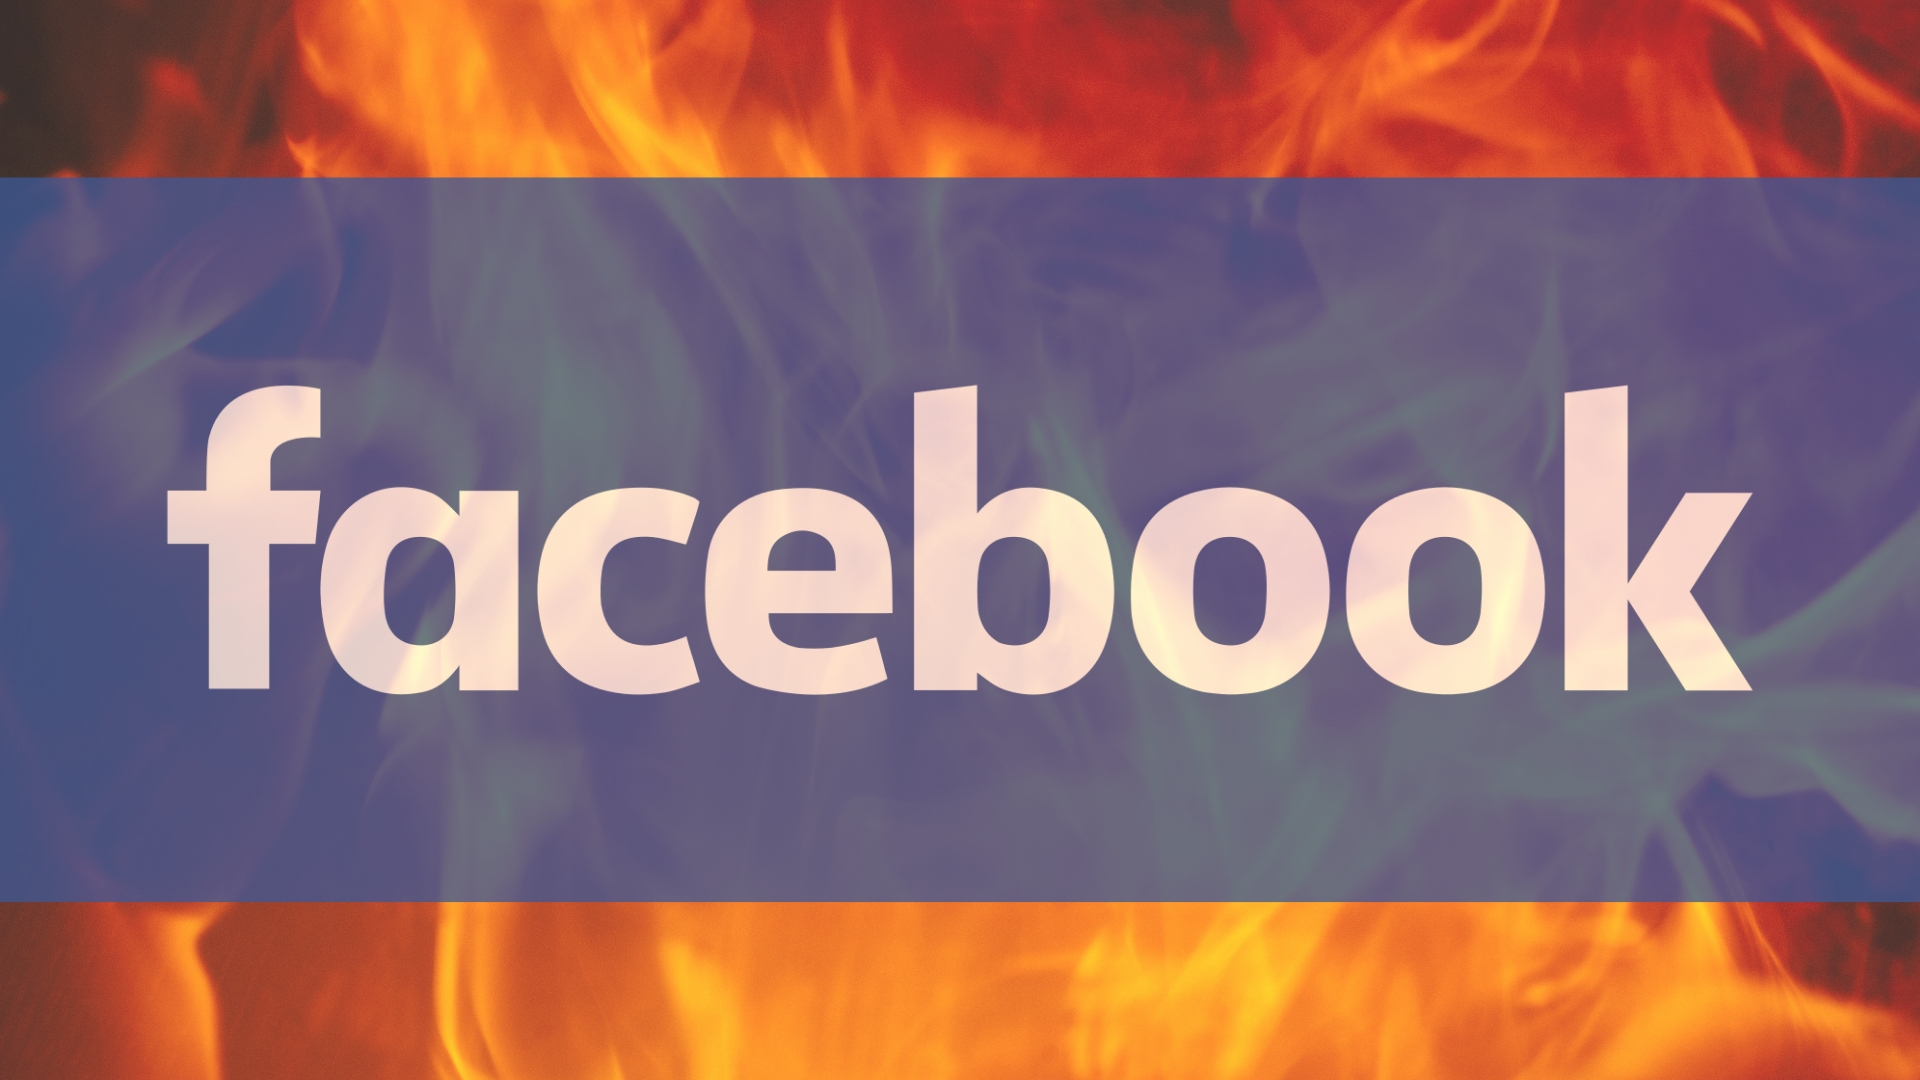 A Fire on Facebook